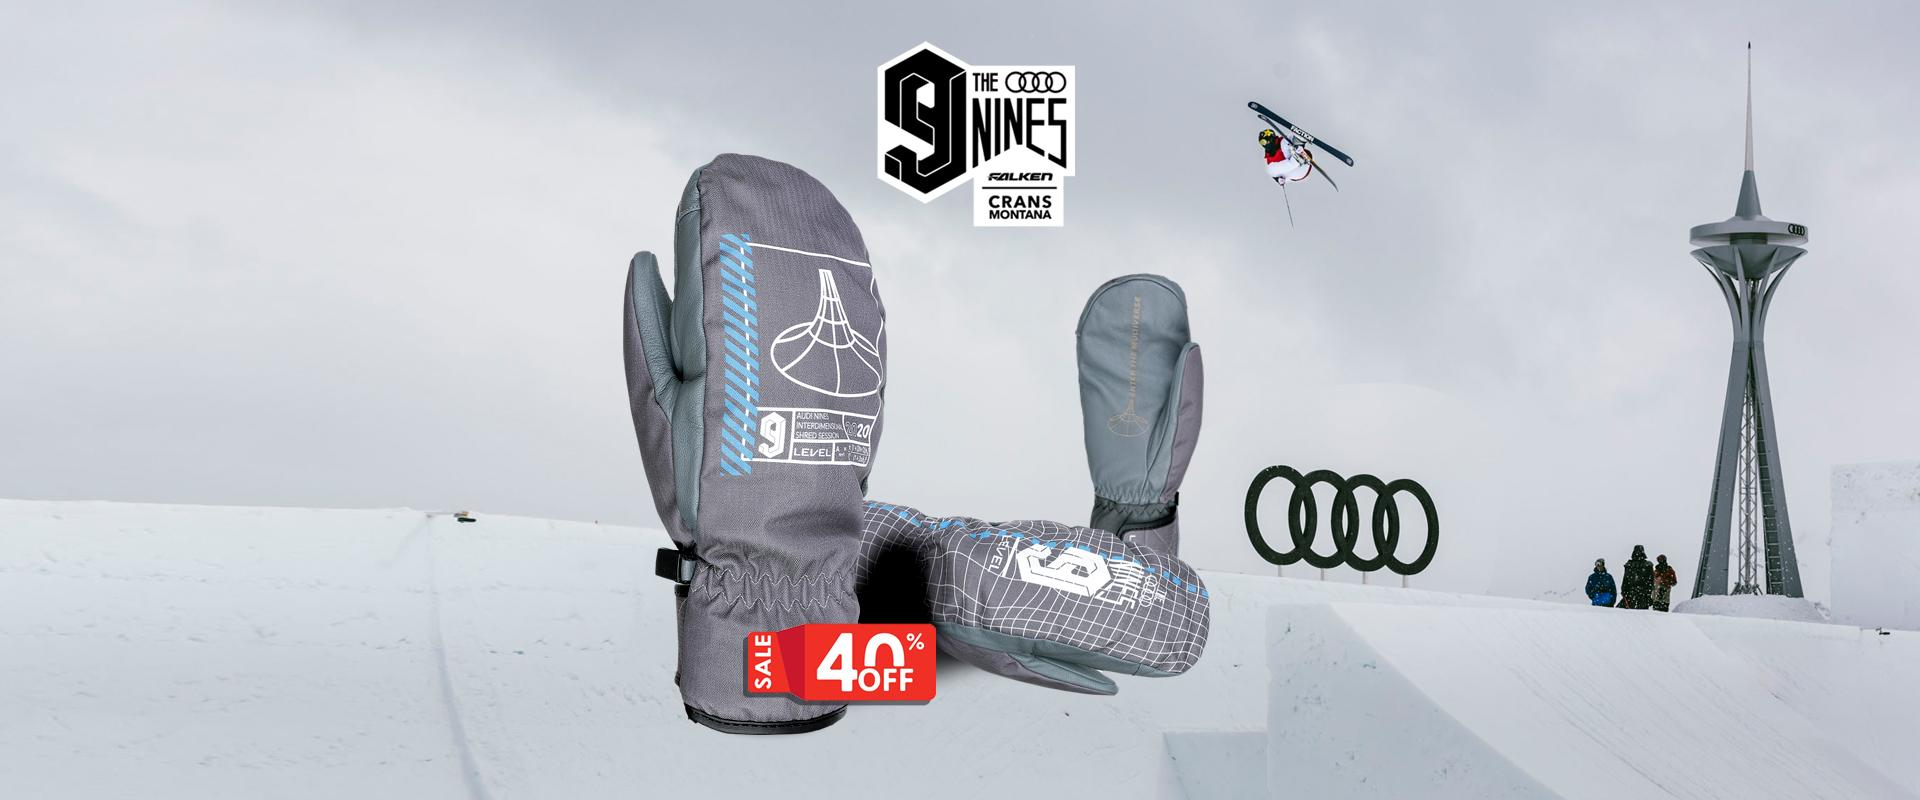 Promo Special Edition Mitt of the Audi Nine